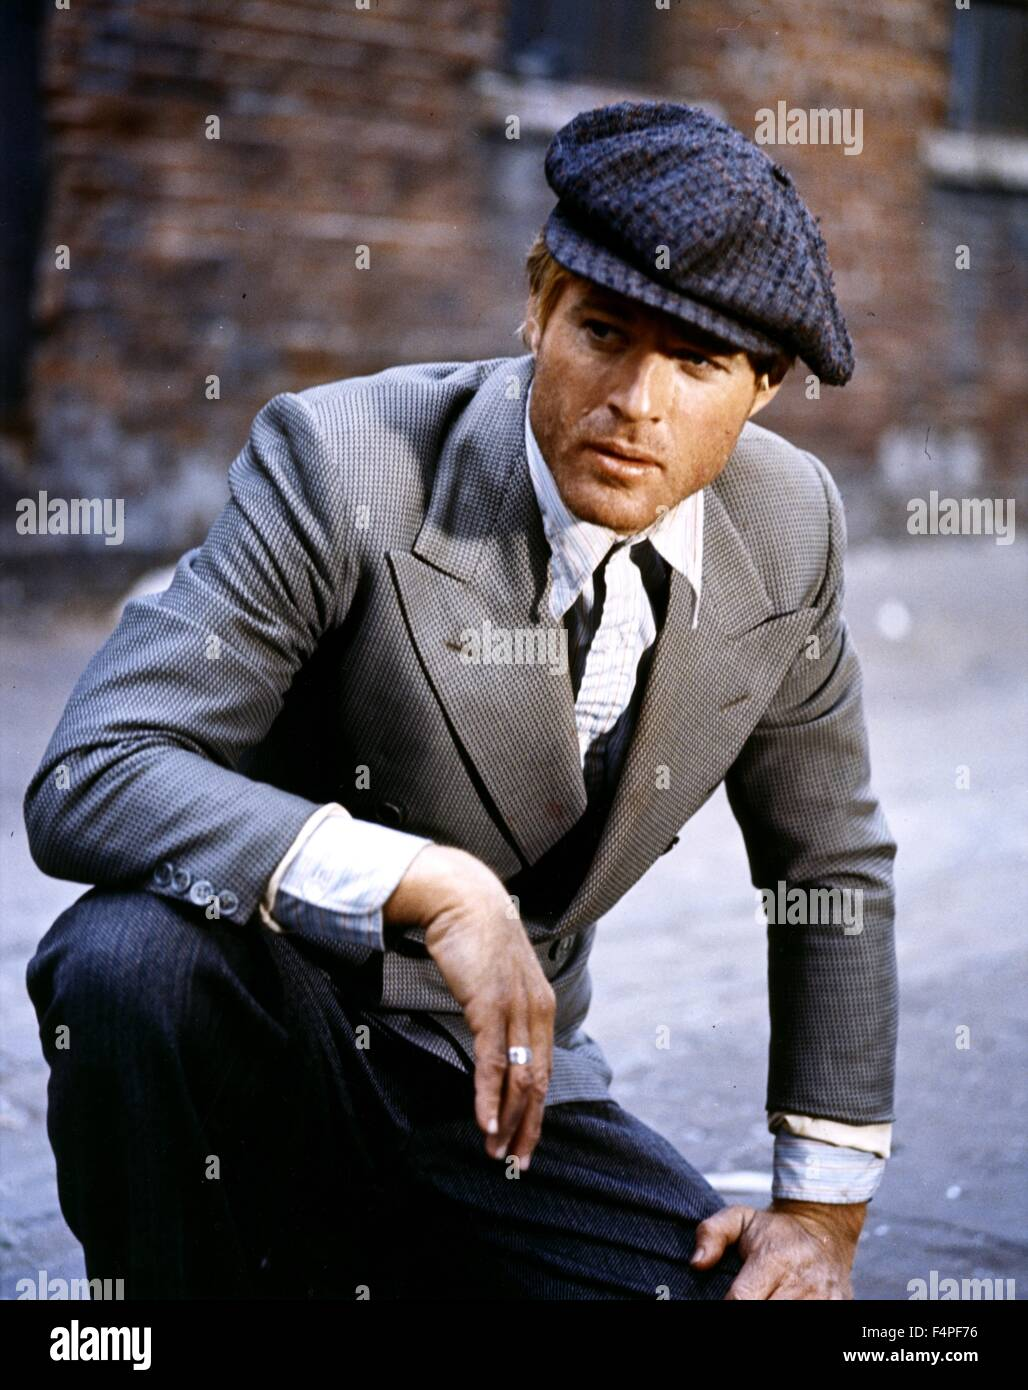 Robert Redford / The Sting / 1973 directed by George Roy Hill - Stock Image